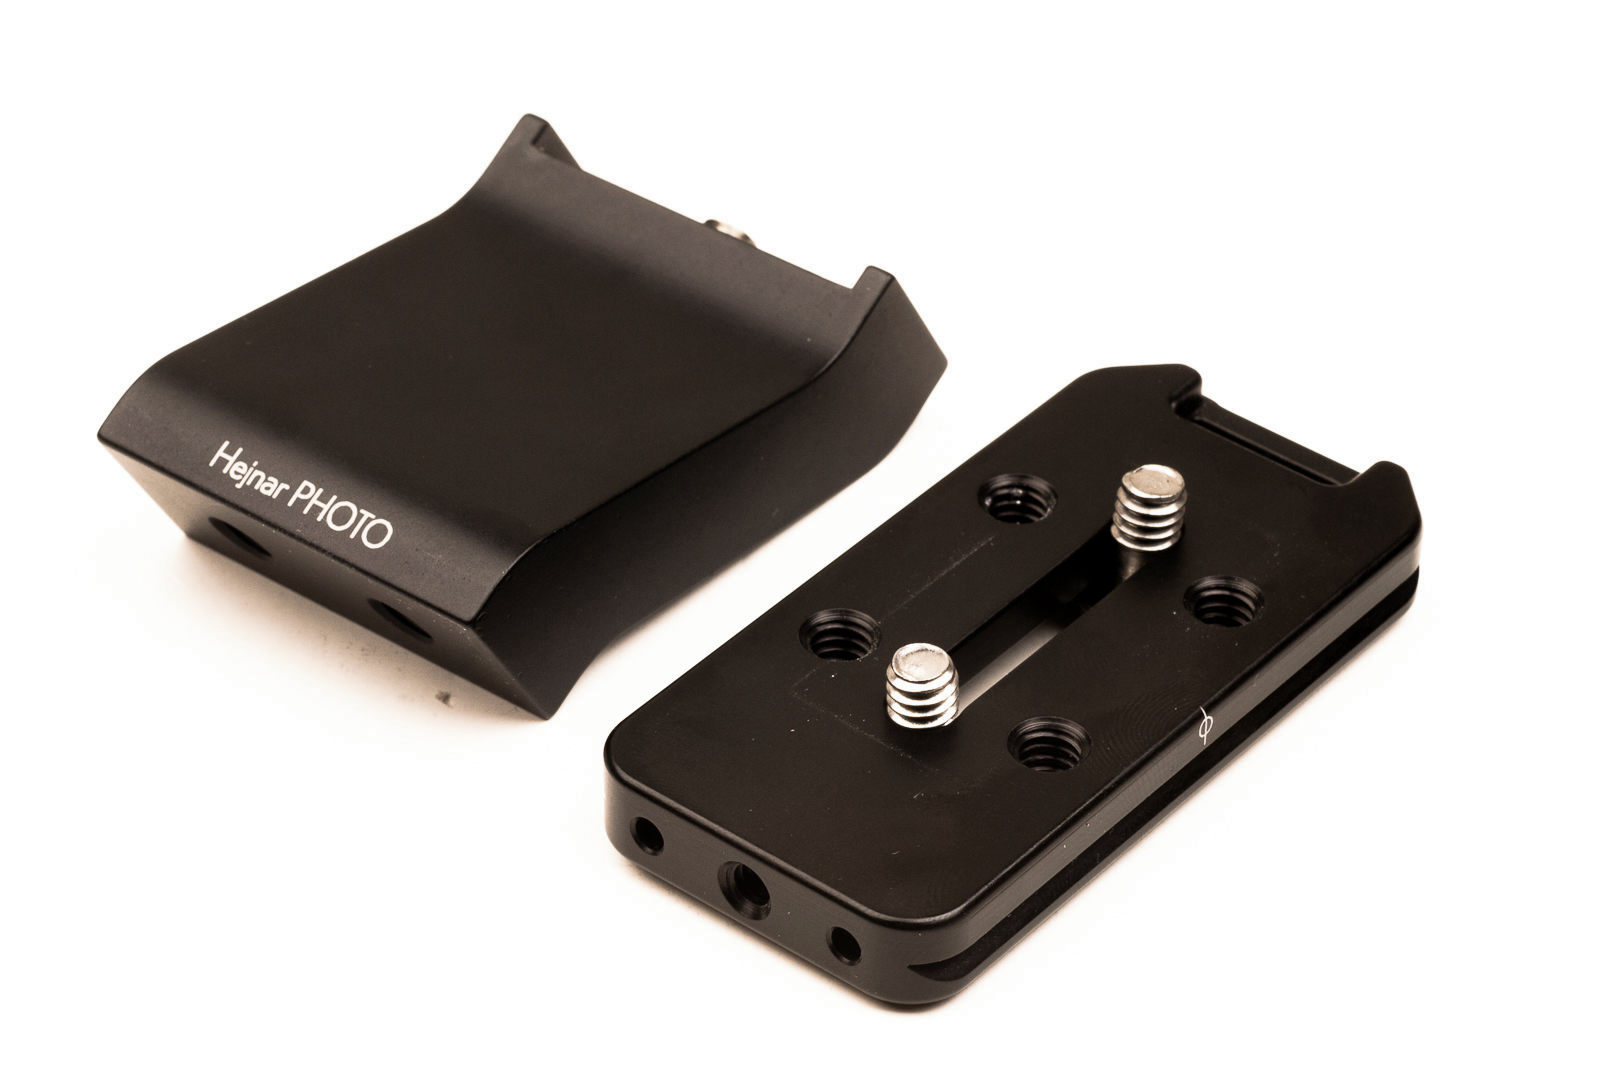 Hejnar Foot Assembly for Metabones Adapter components